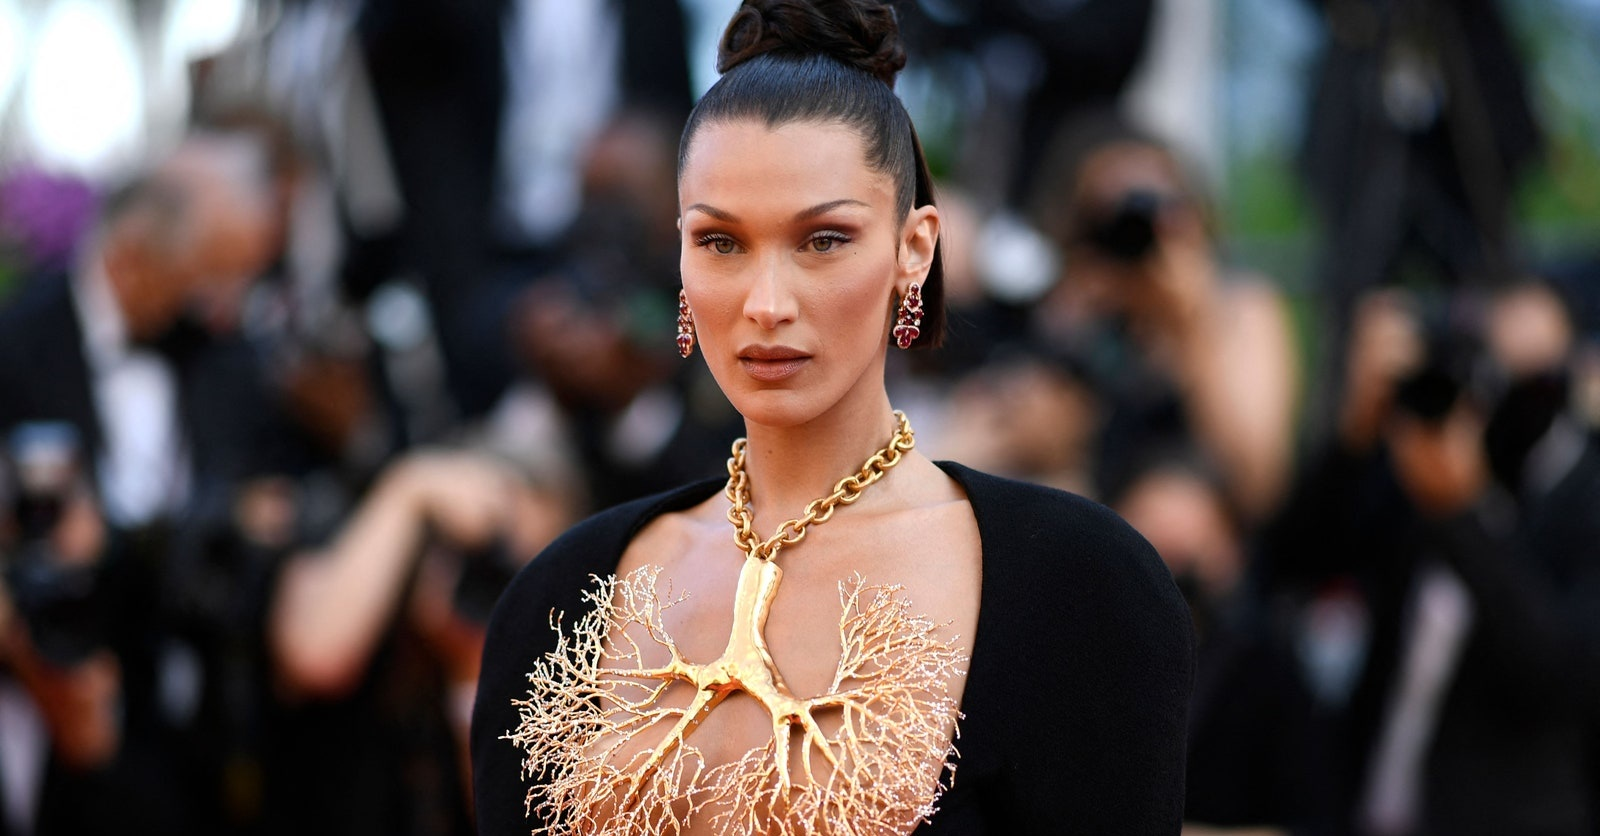 Bella Hadid had the best jewellery moment at the Cannes Film Festival 2021